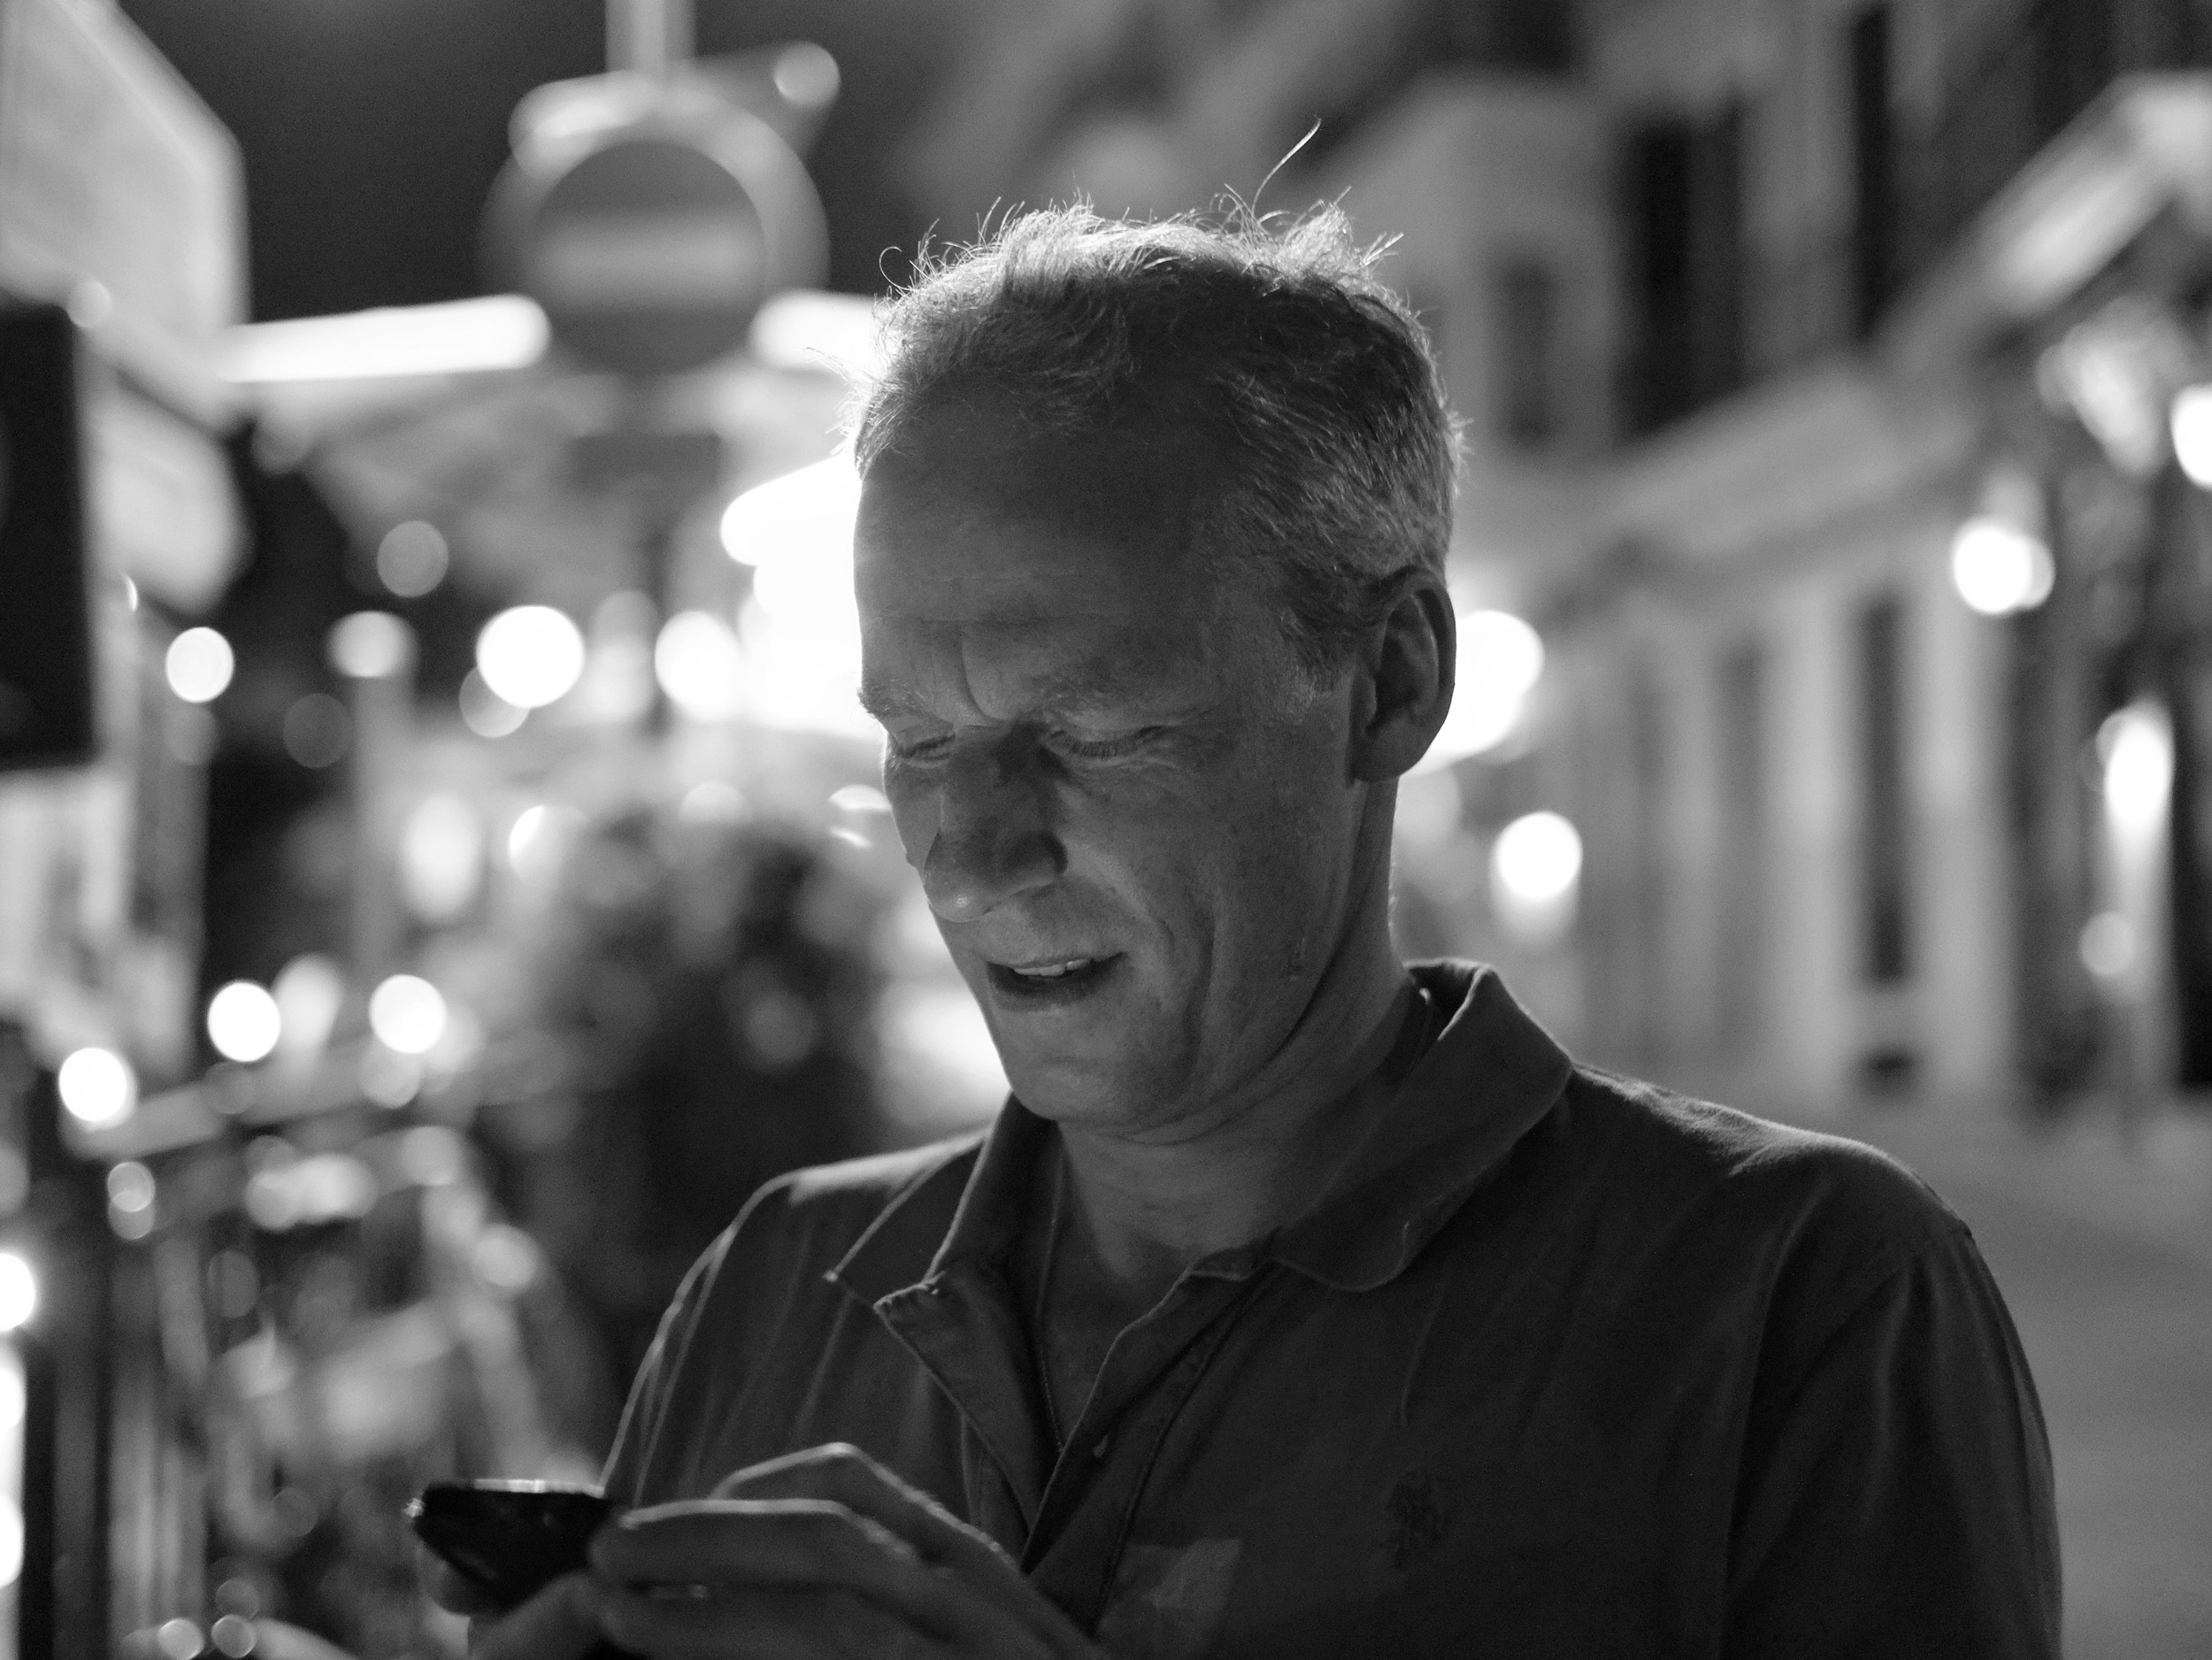 Man on telephone Sollar, Majorca - Fuji X-Pro1